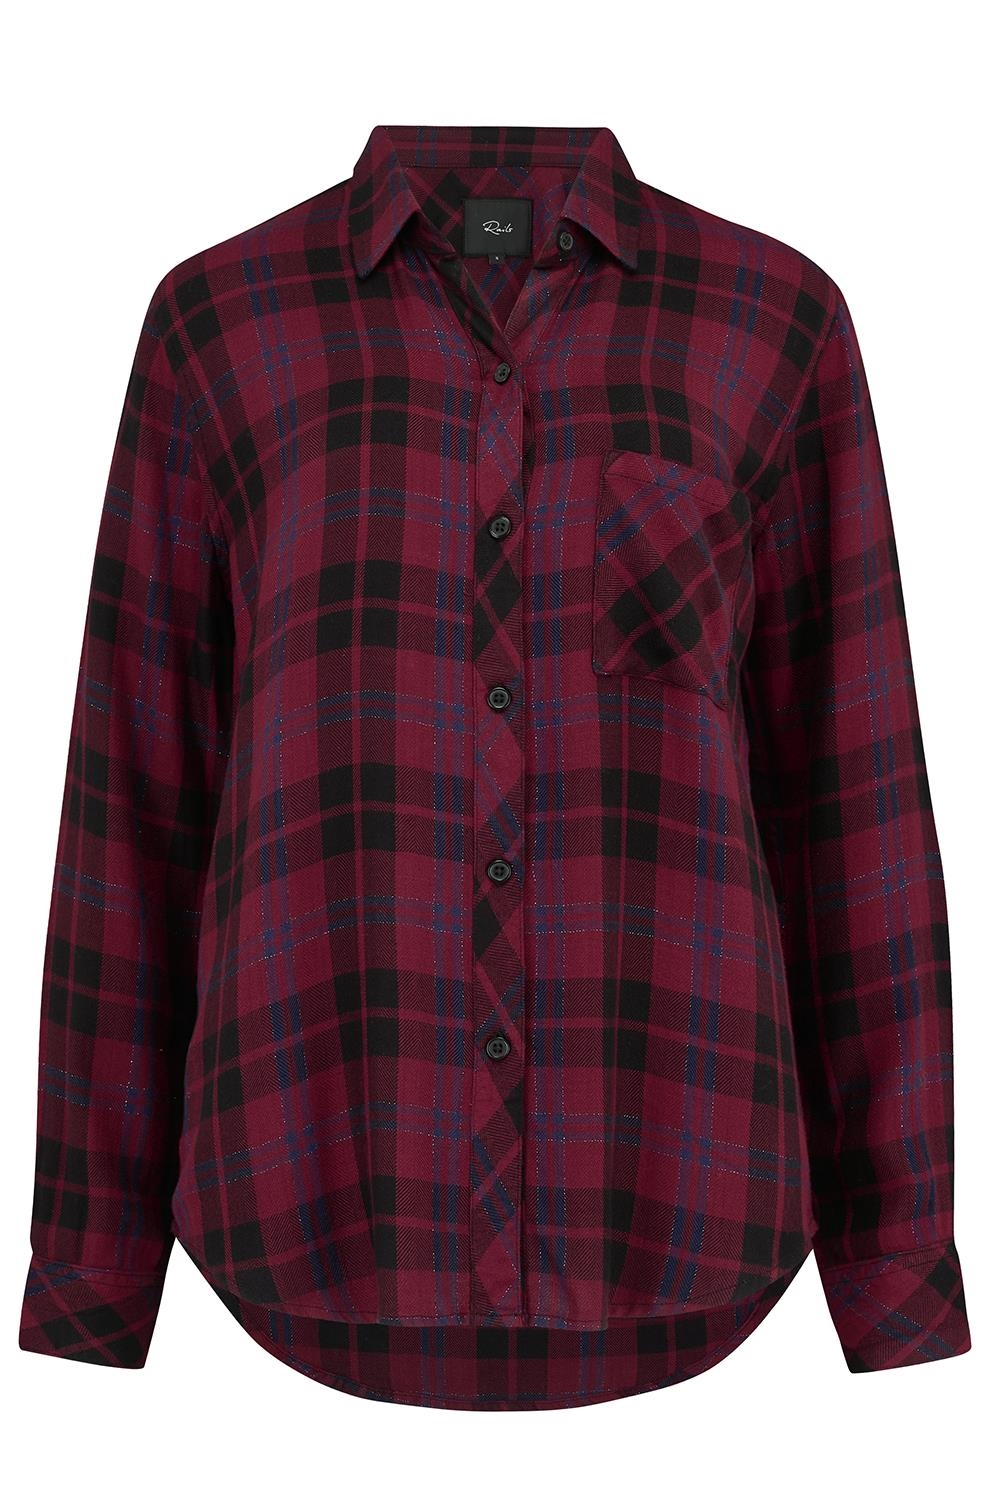 8768c59a Rails Hunter Shirt in Wine, Navy and Black -